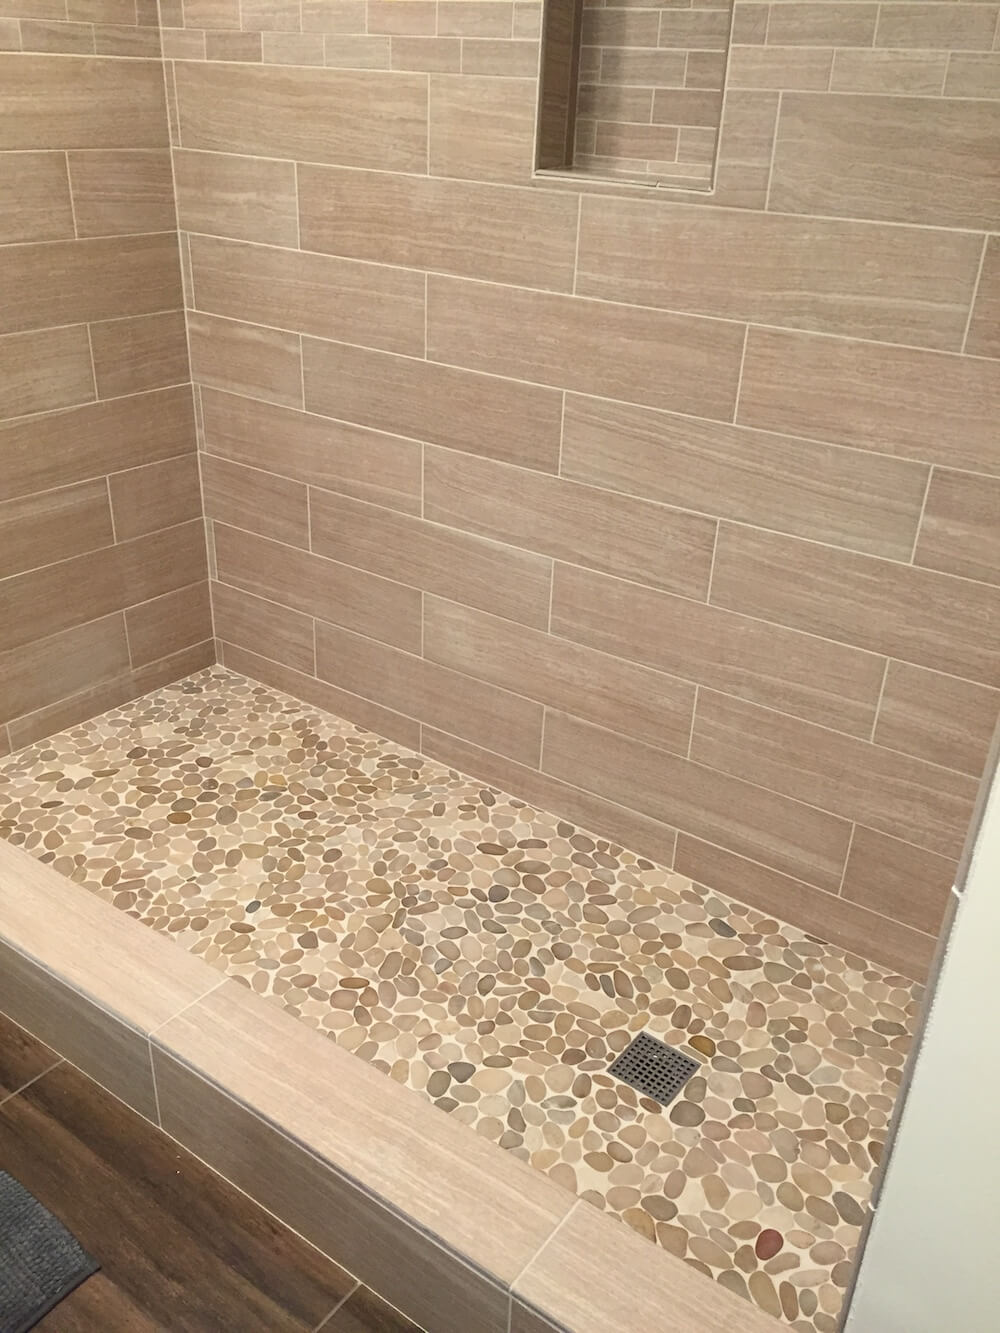 2018 cost to tile a shower how much to tile a shower showing tiling cost factors dailygadgetfo Images